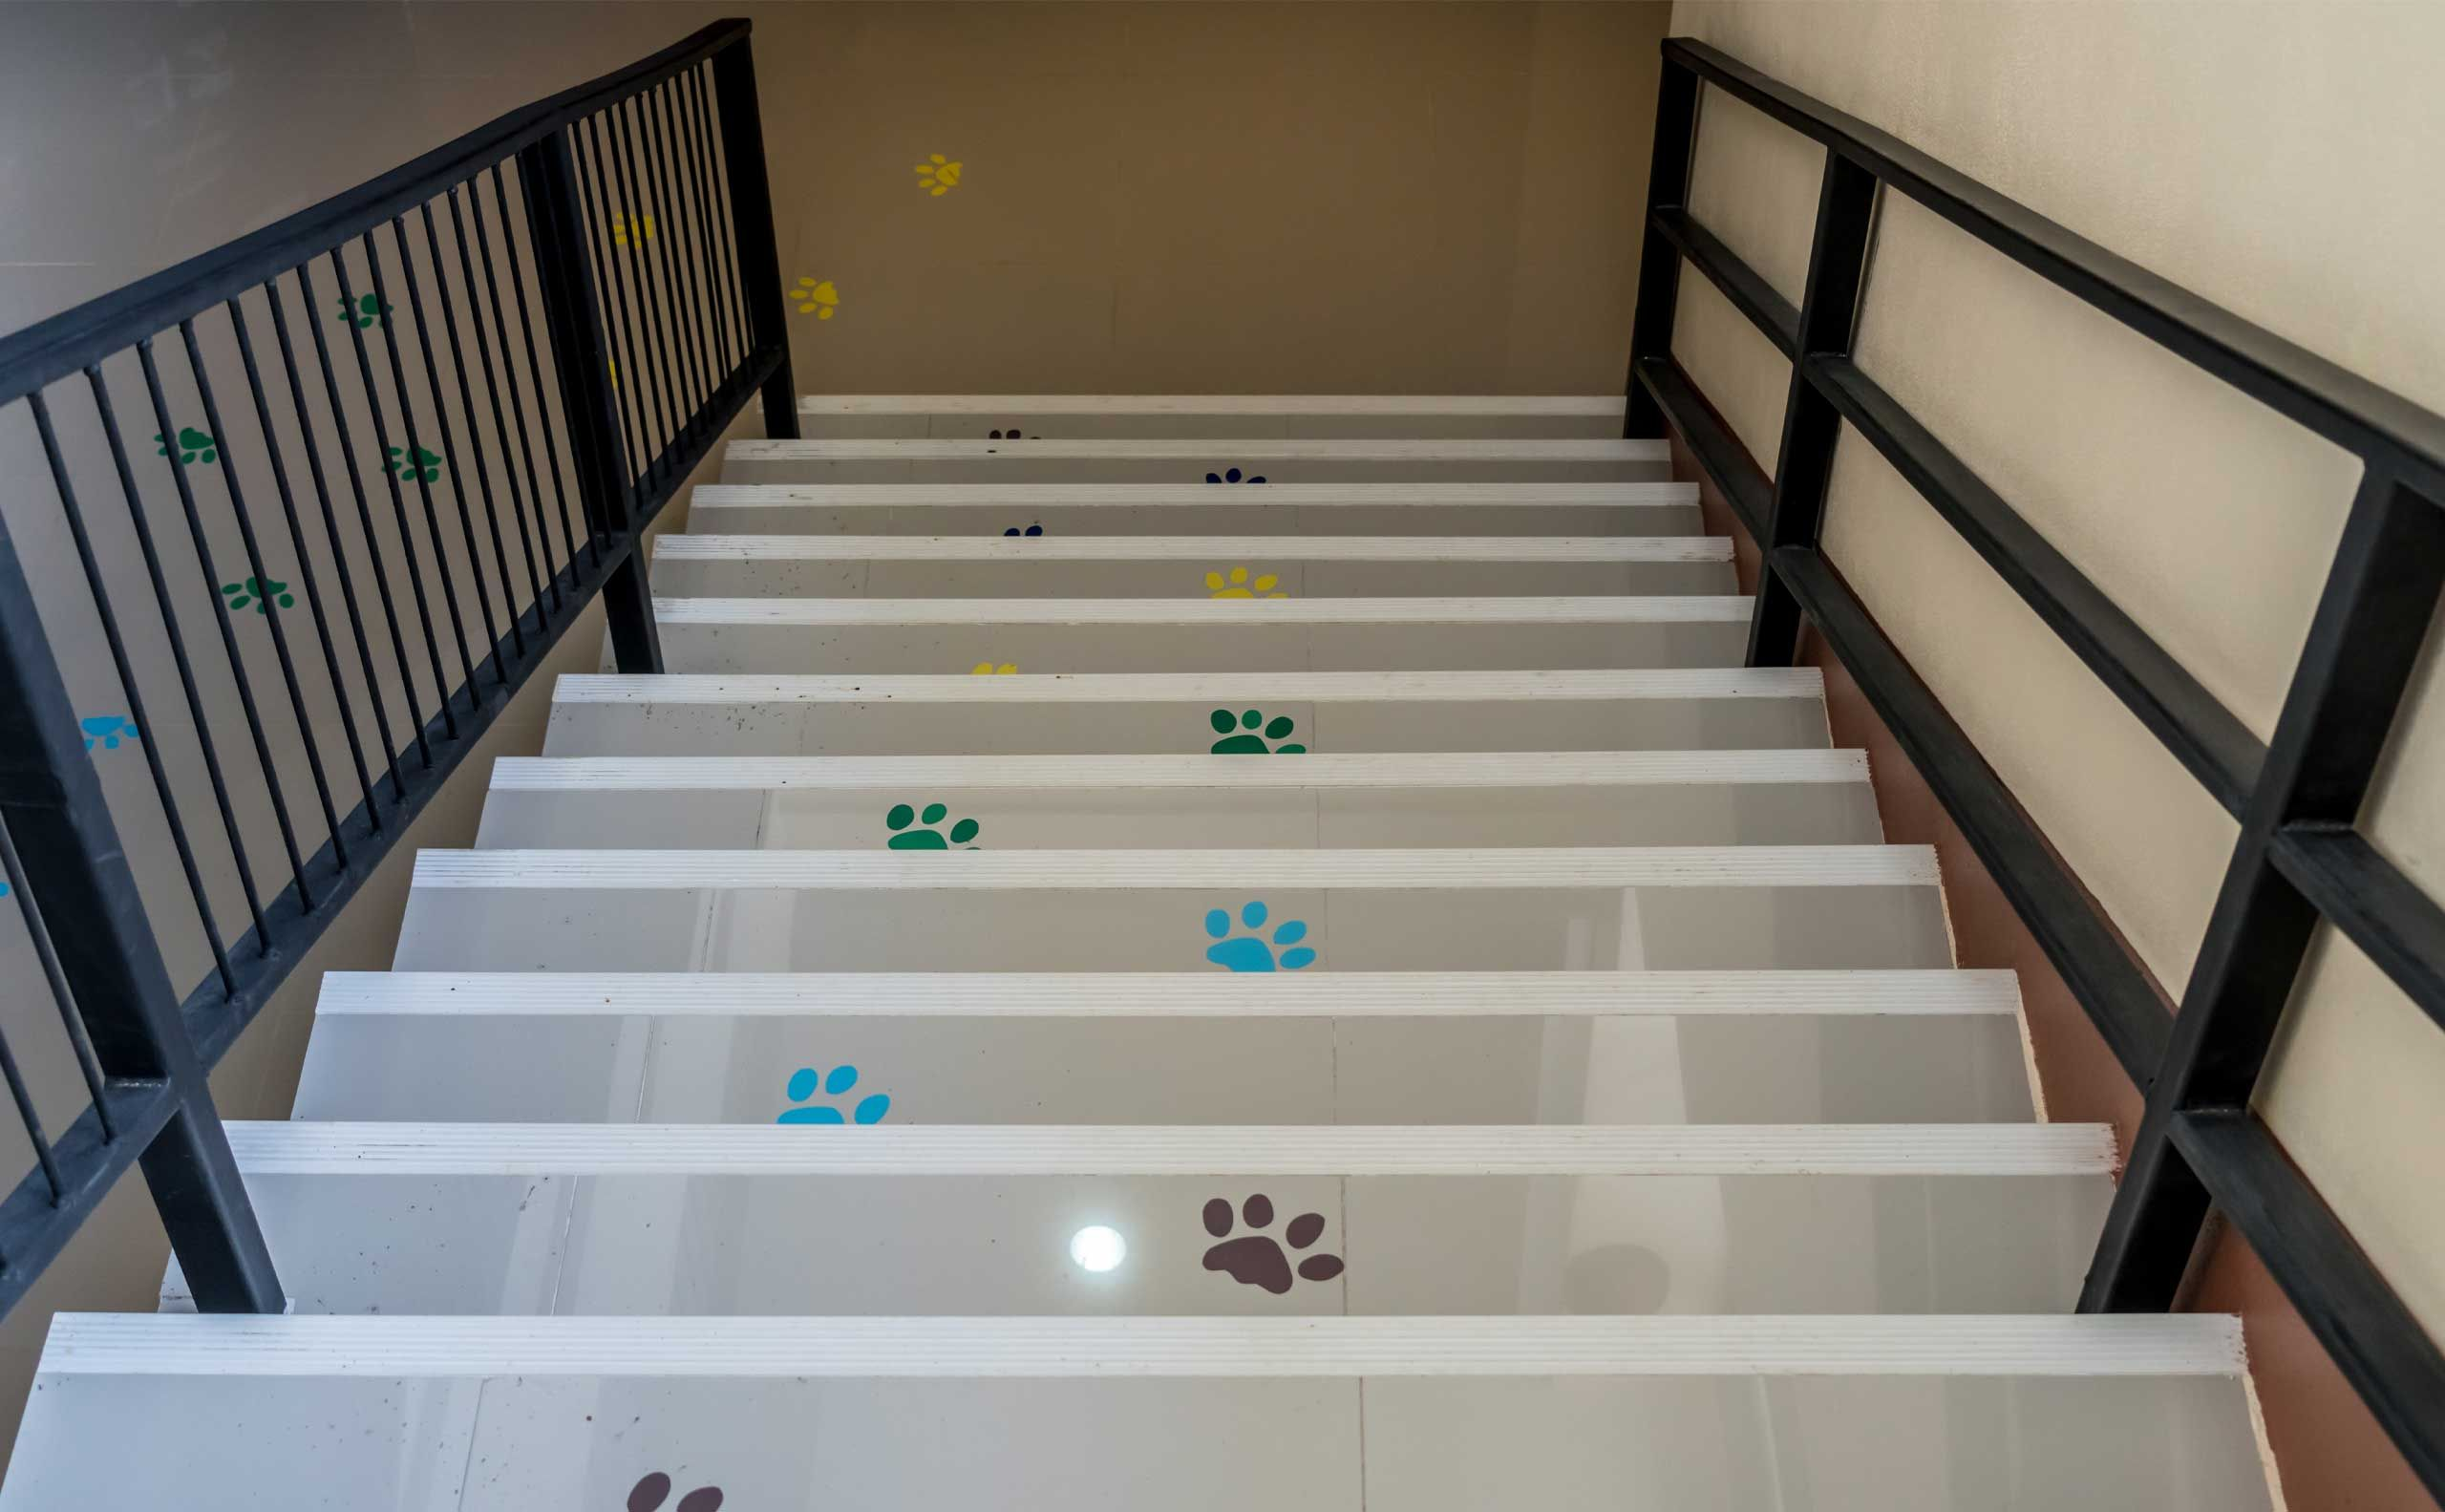 Floor decals of pawprints